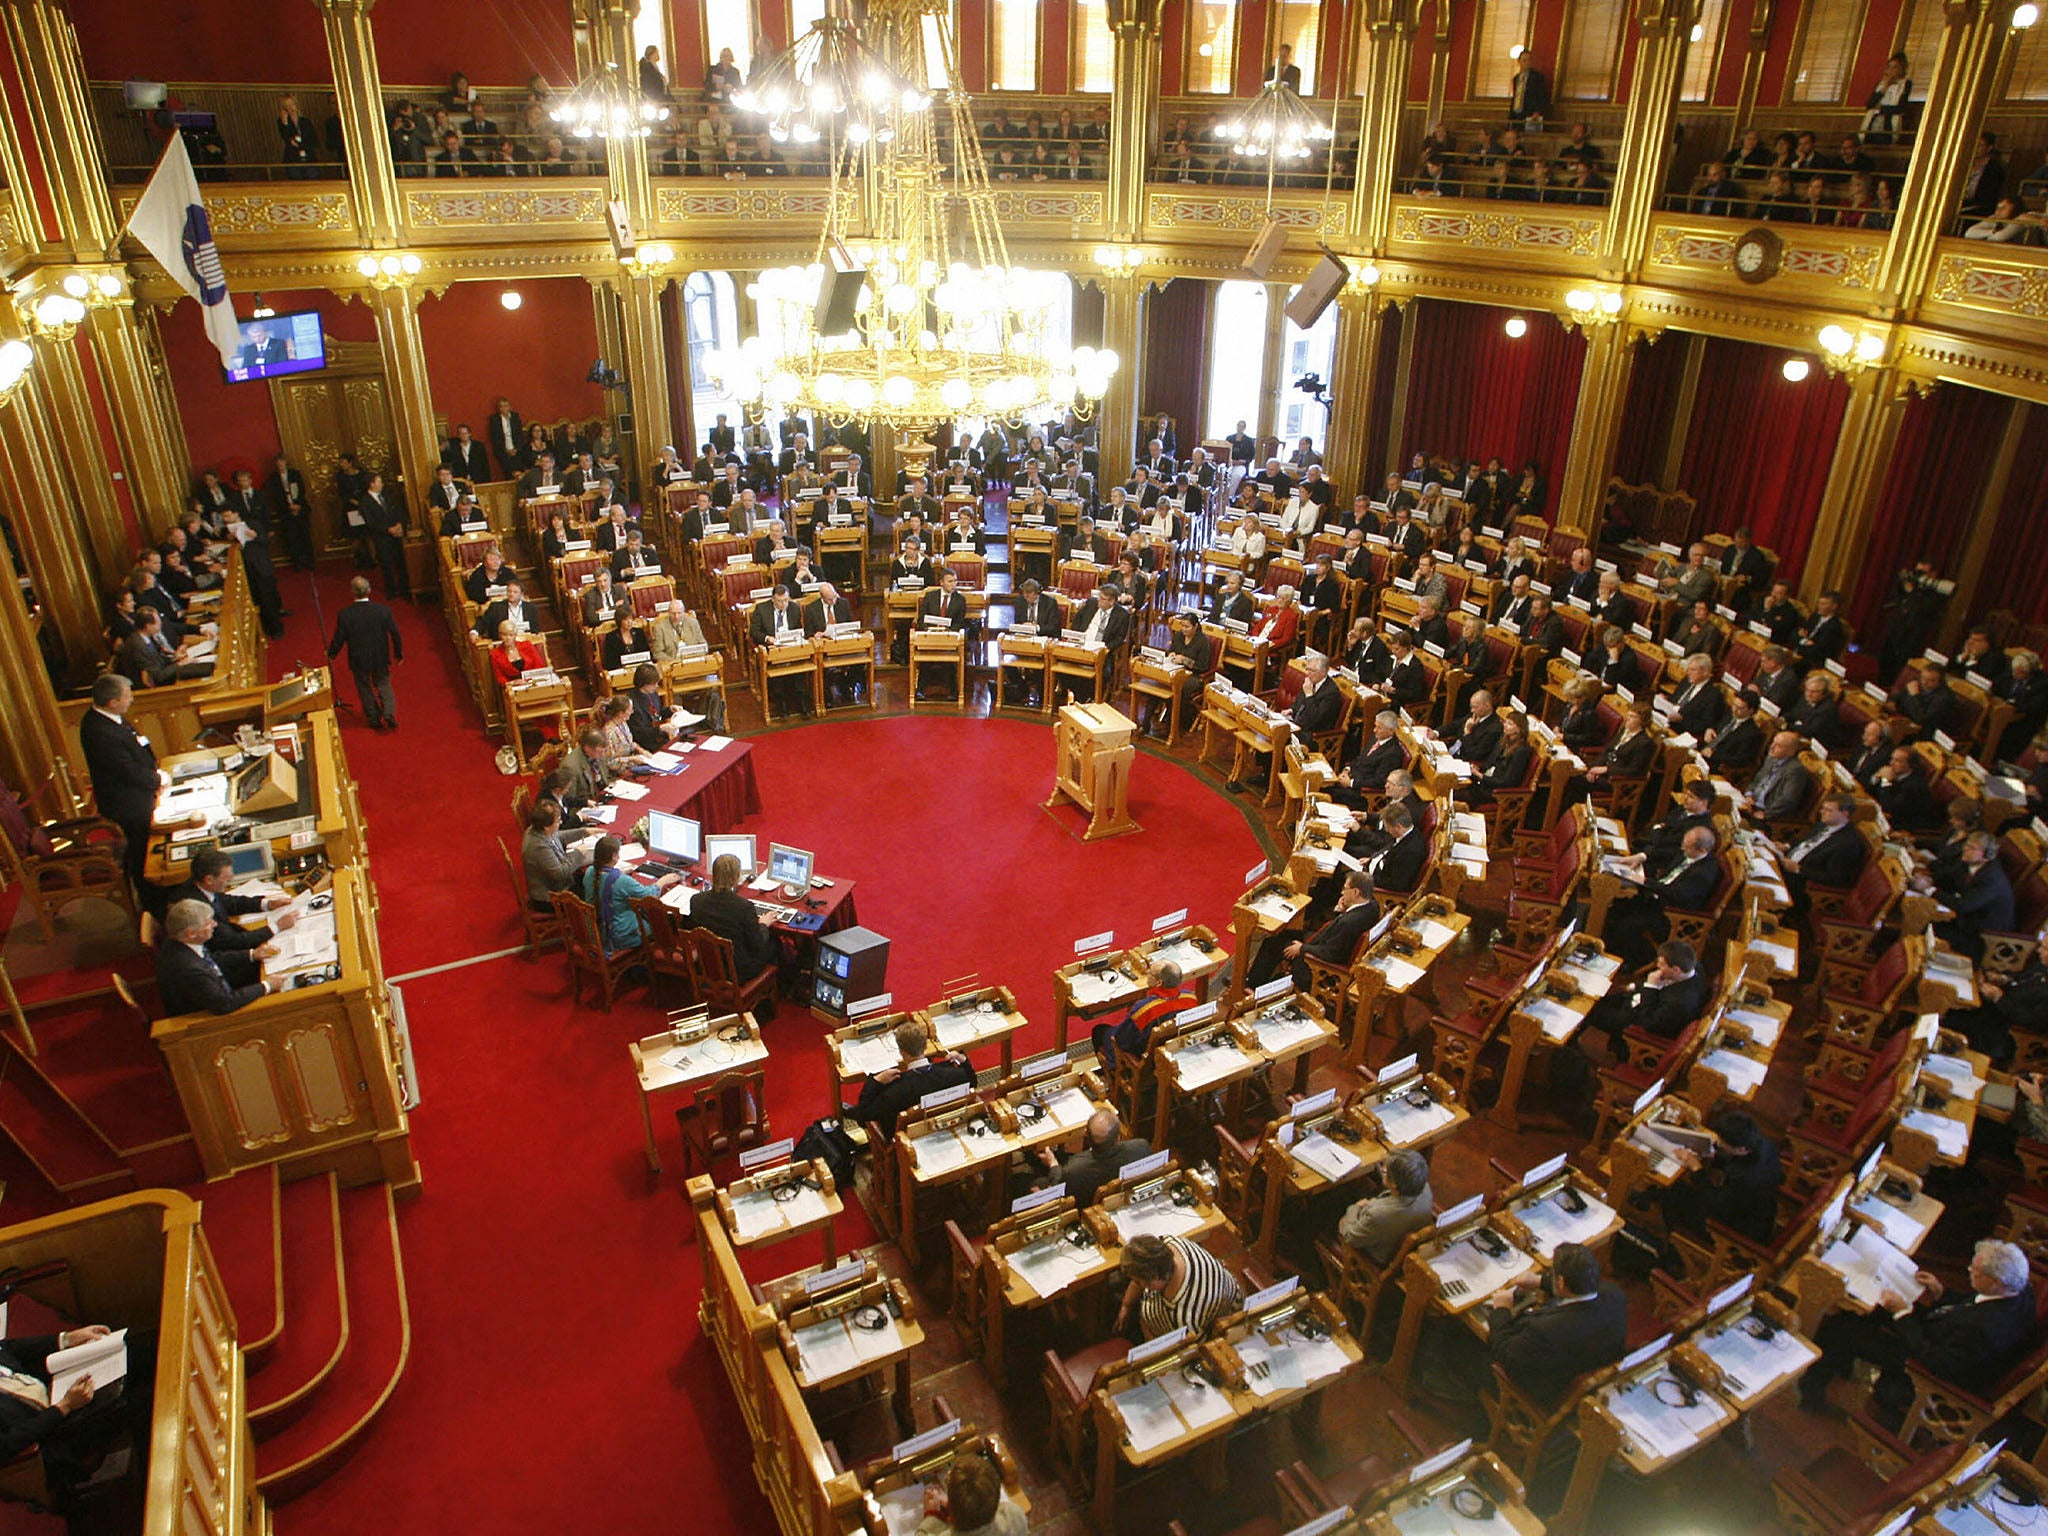 Norway becomes first Scandinavian country to decriminalise drugs in historic vote